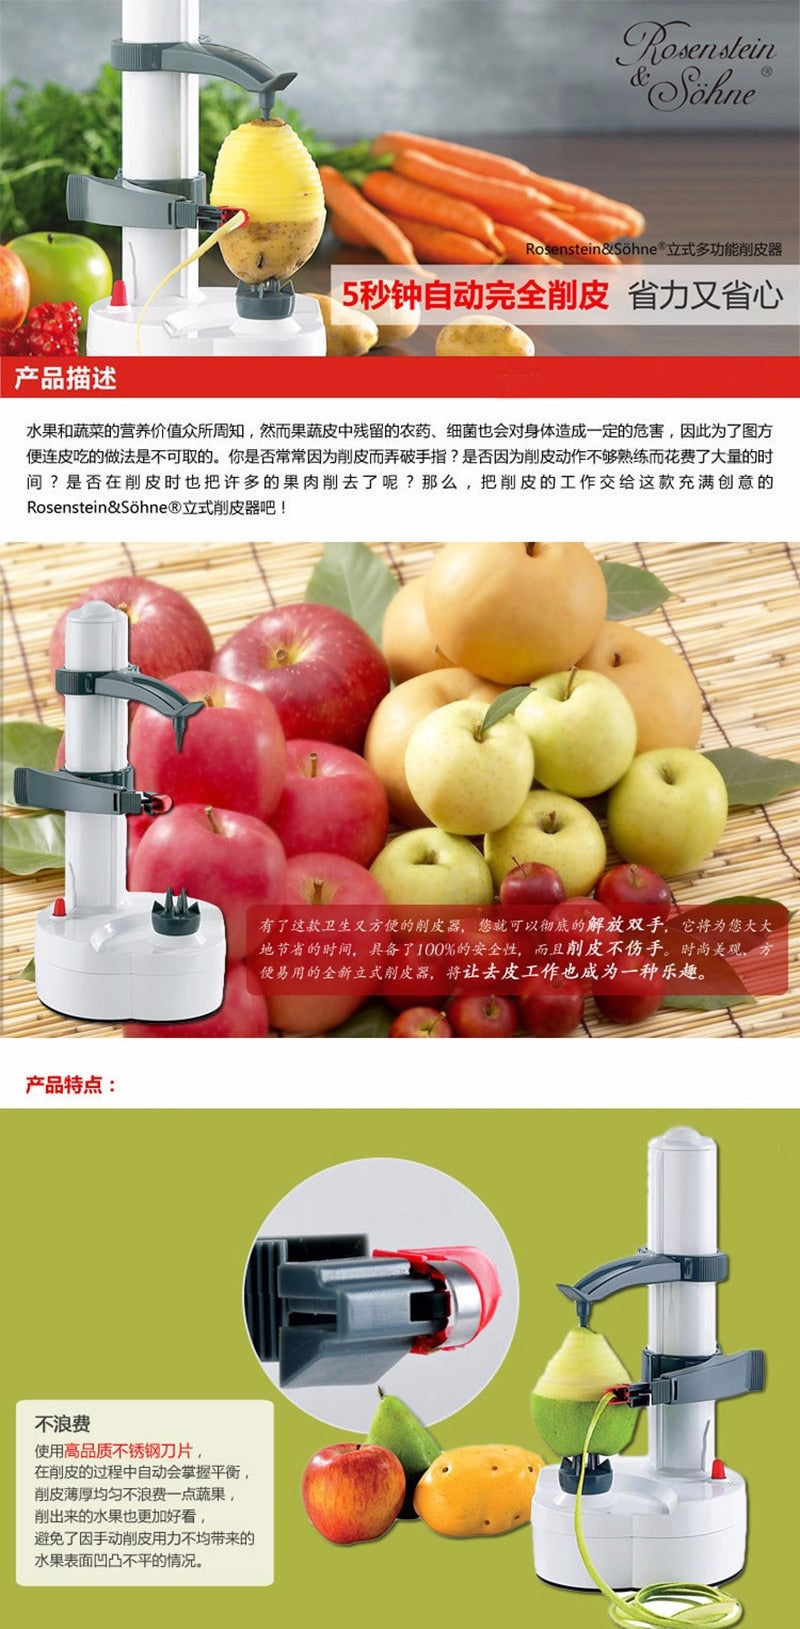 Multifunction Electric Fruit Peeler